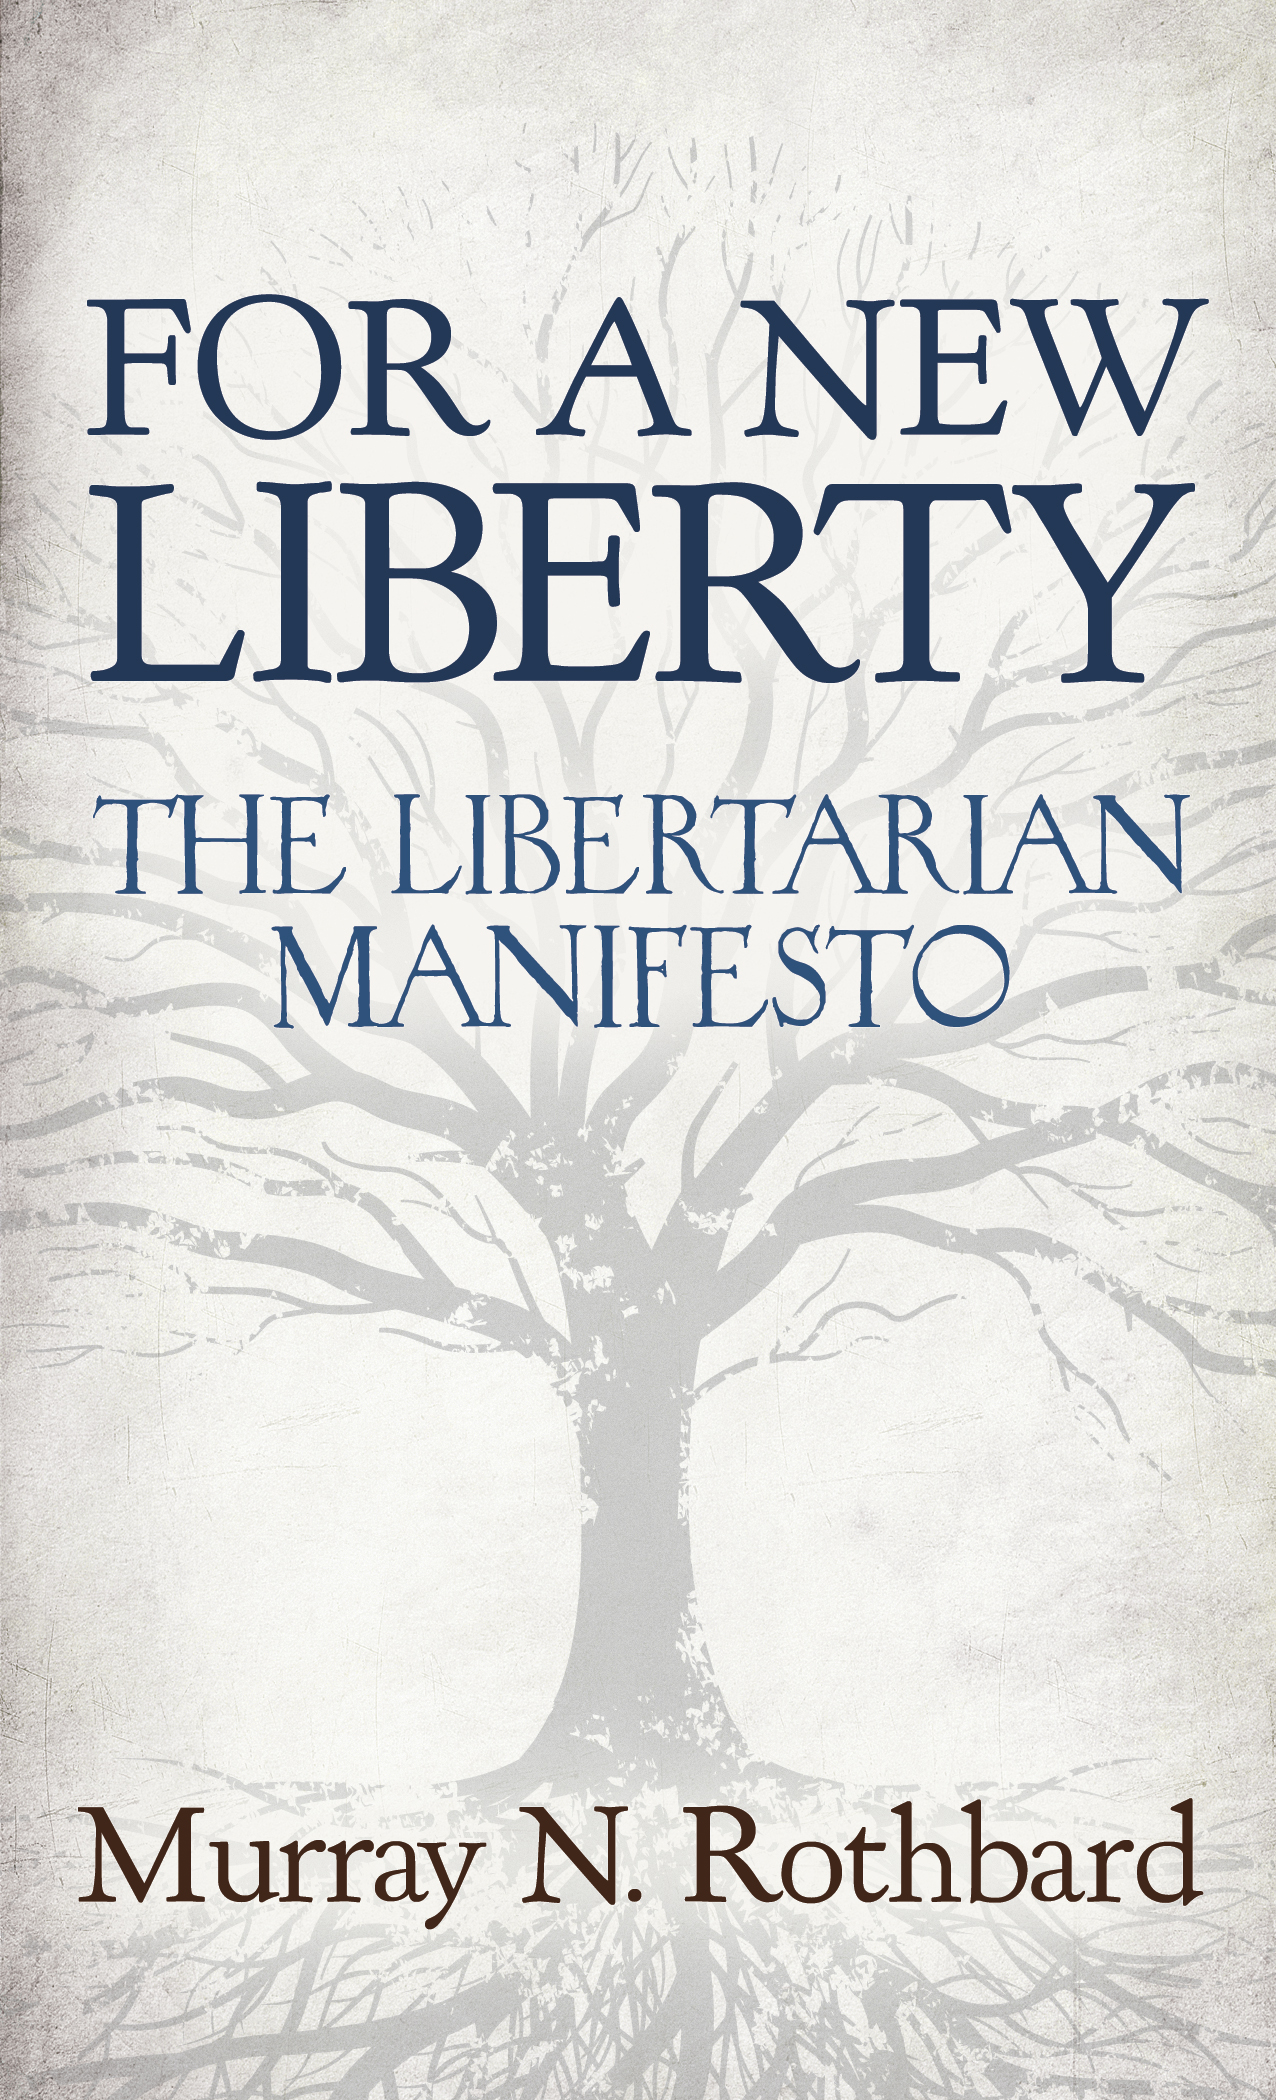 For a New Liberty | The Last Bastille